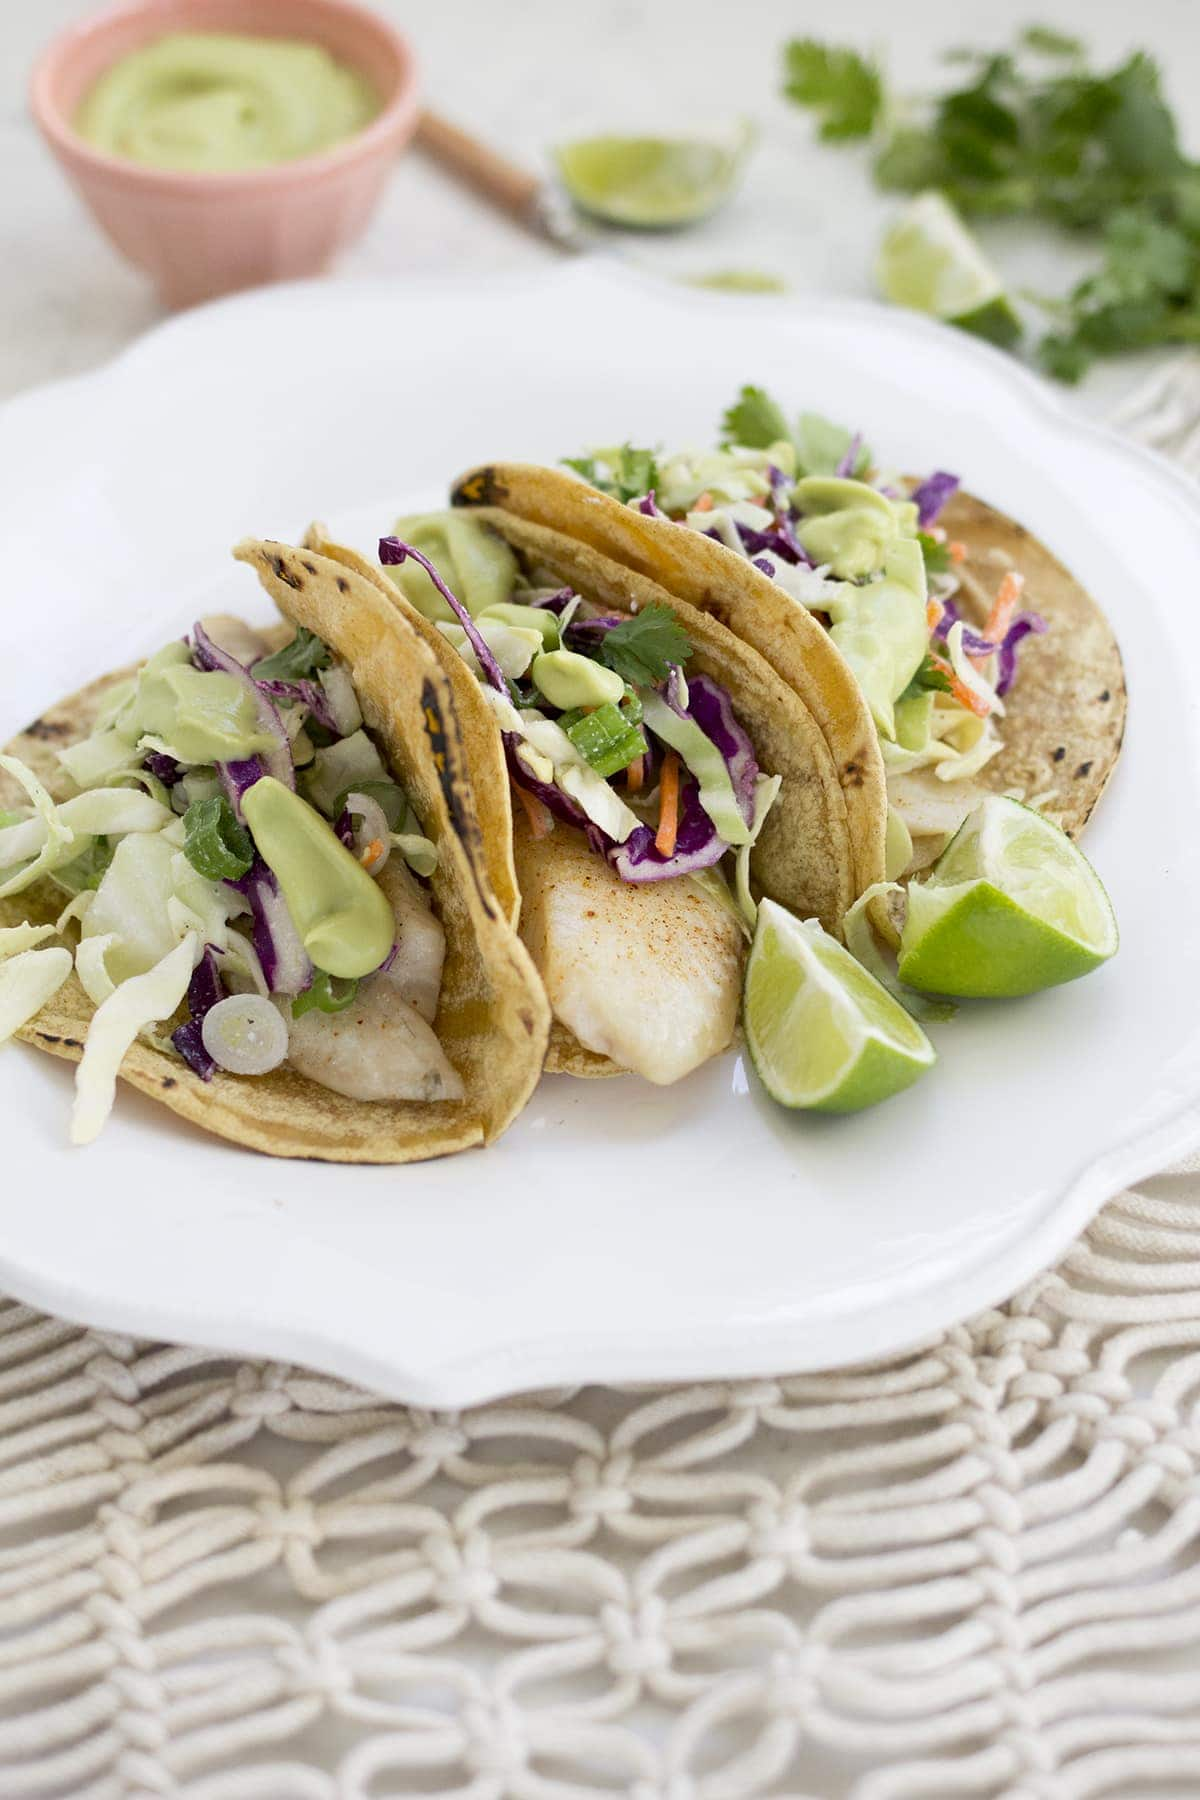 Fish Tacos with Coconut Avocado Crema